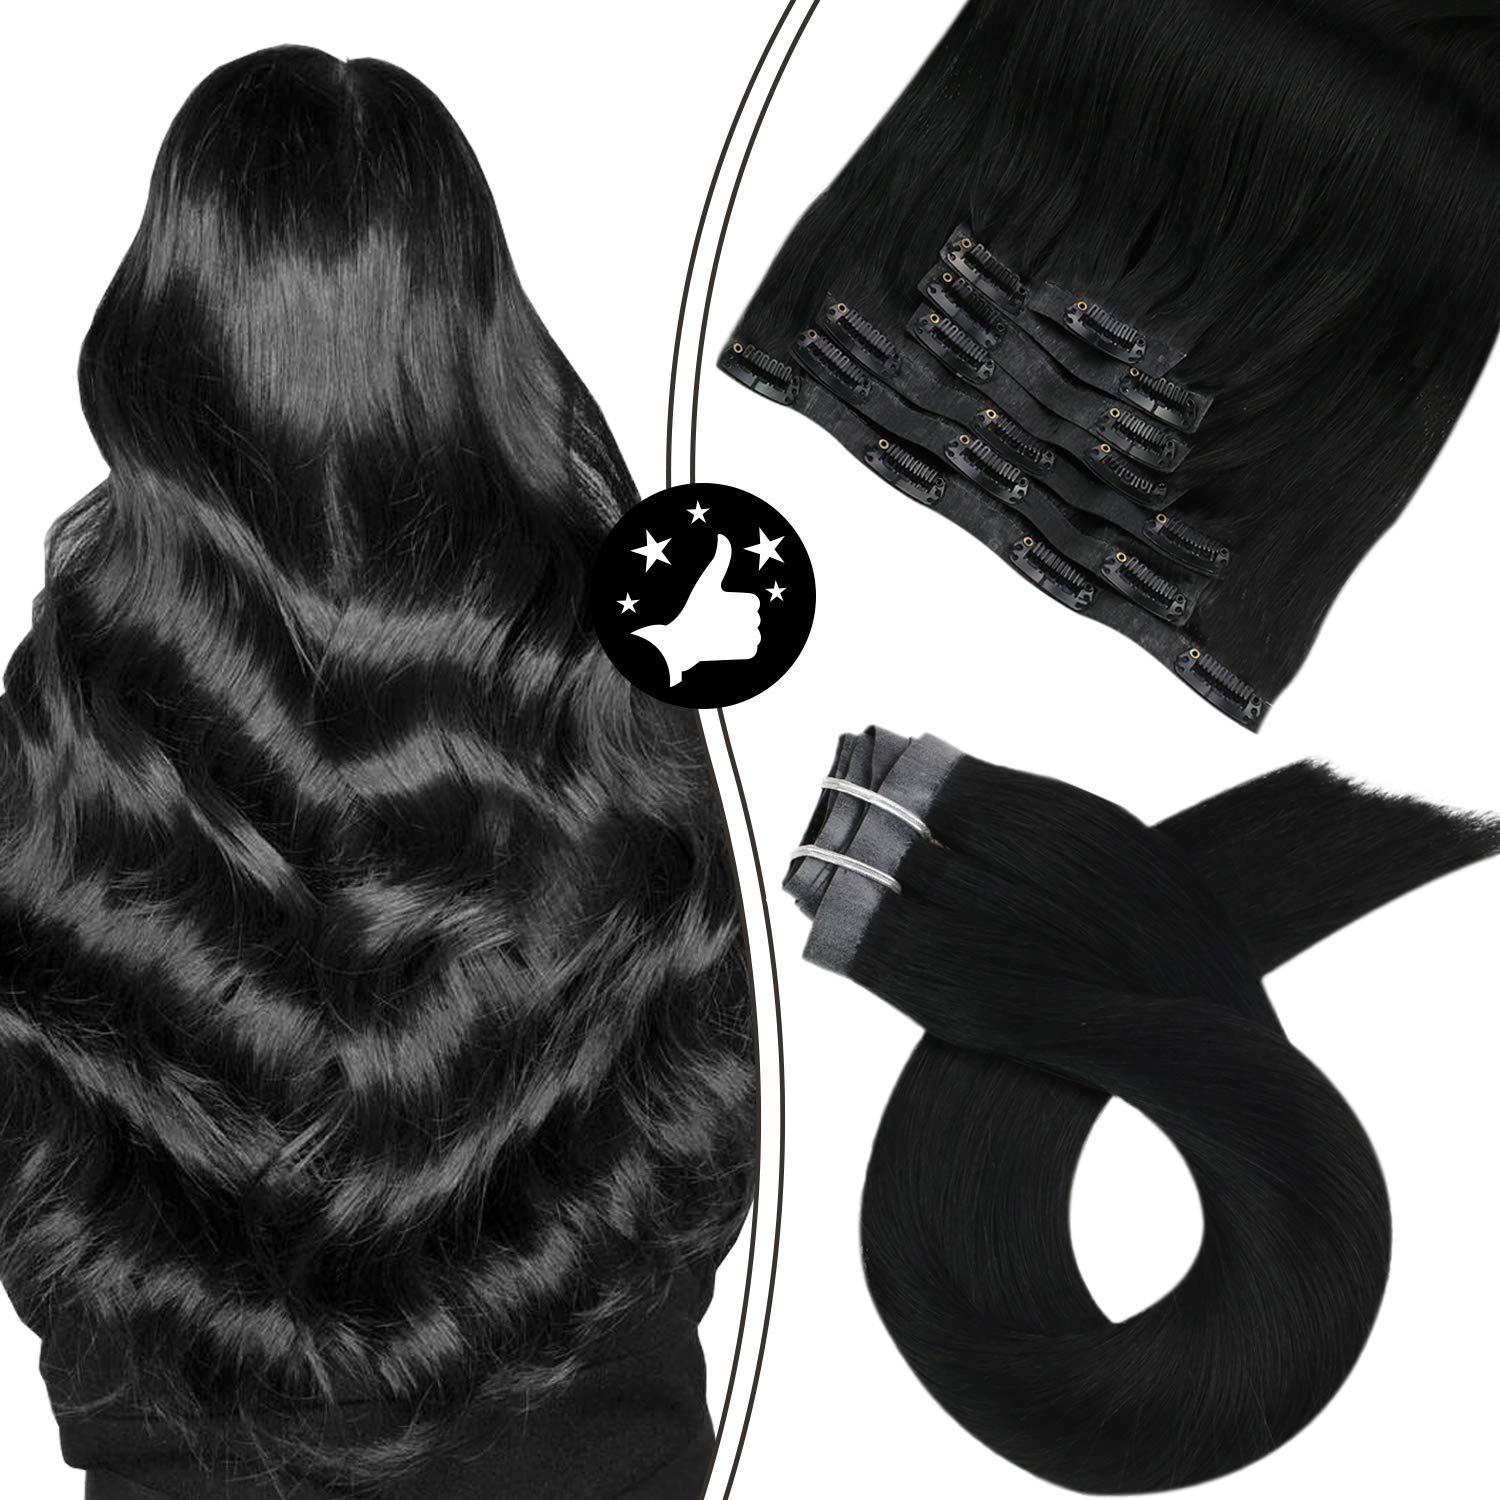 Seamless Clip in Hair Extensions Thick PU Machine Remy Hair #1 Jet Black 100% Real Human Hair 7pcs 100g Natural Straight